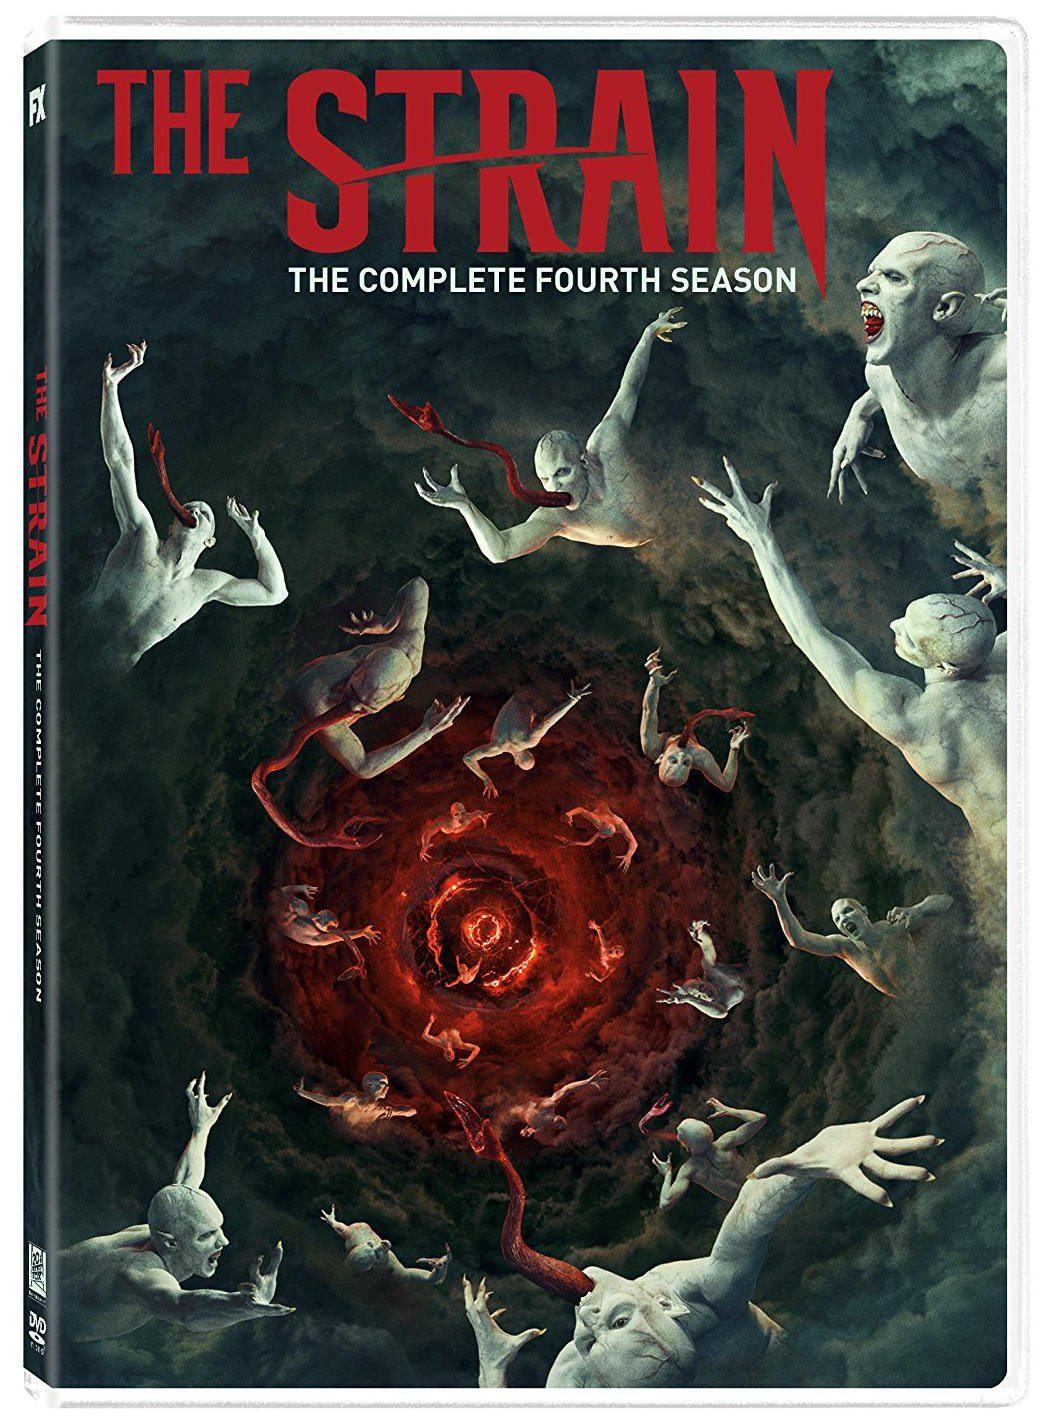 'The Strain' Fourth Season and Complete Series Box Set Release Details!